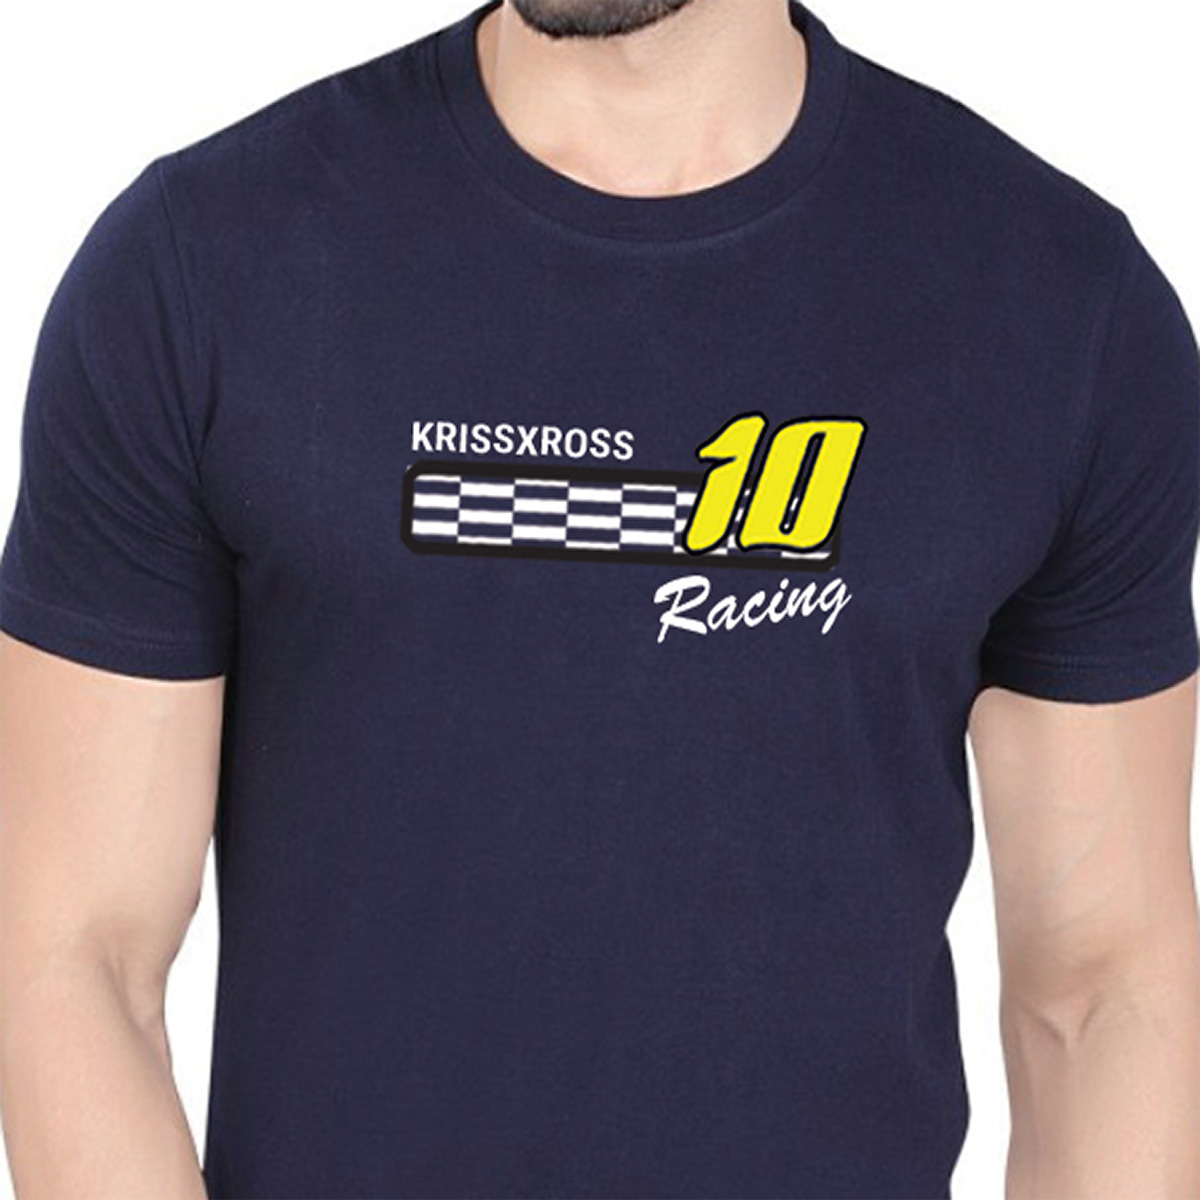 Krissxross Men's 100 % Cotton Premium Bio Washed Blue DTG Graphic Printed T-Shirt - (Krissxross 10 Racing )